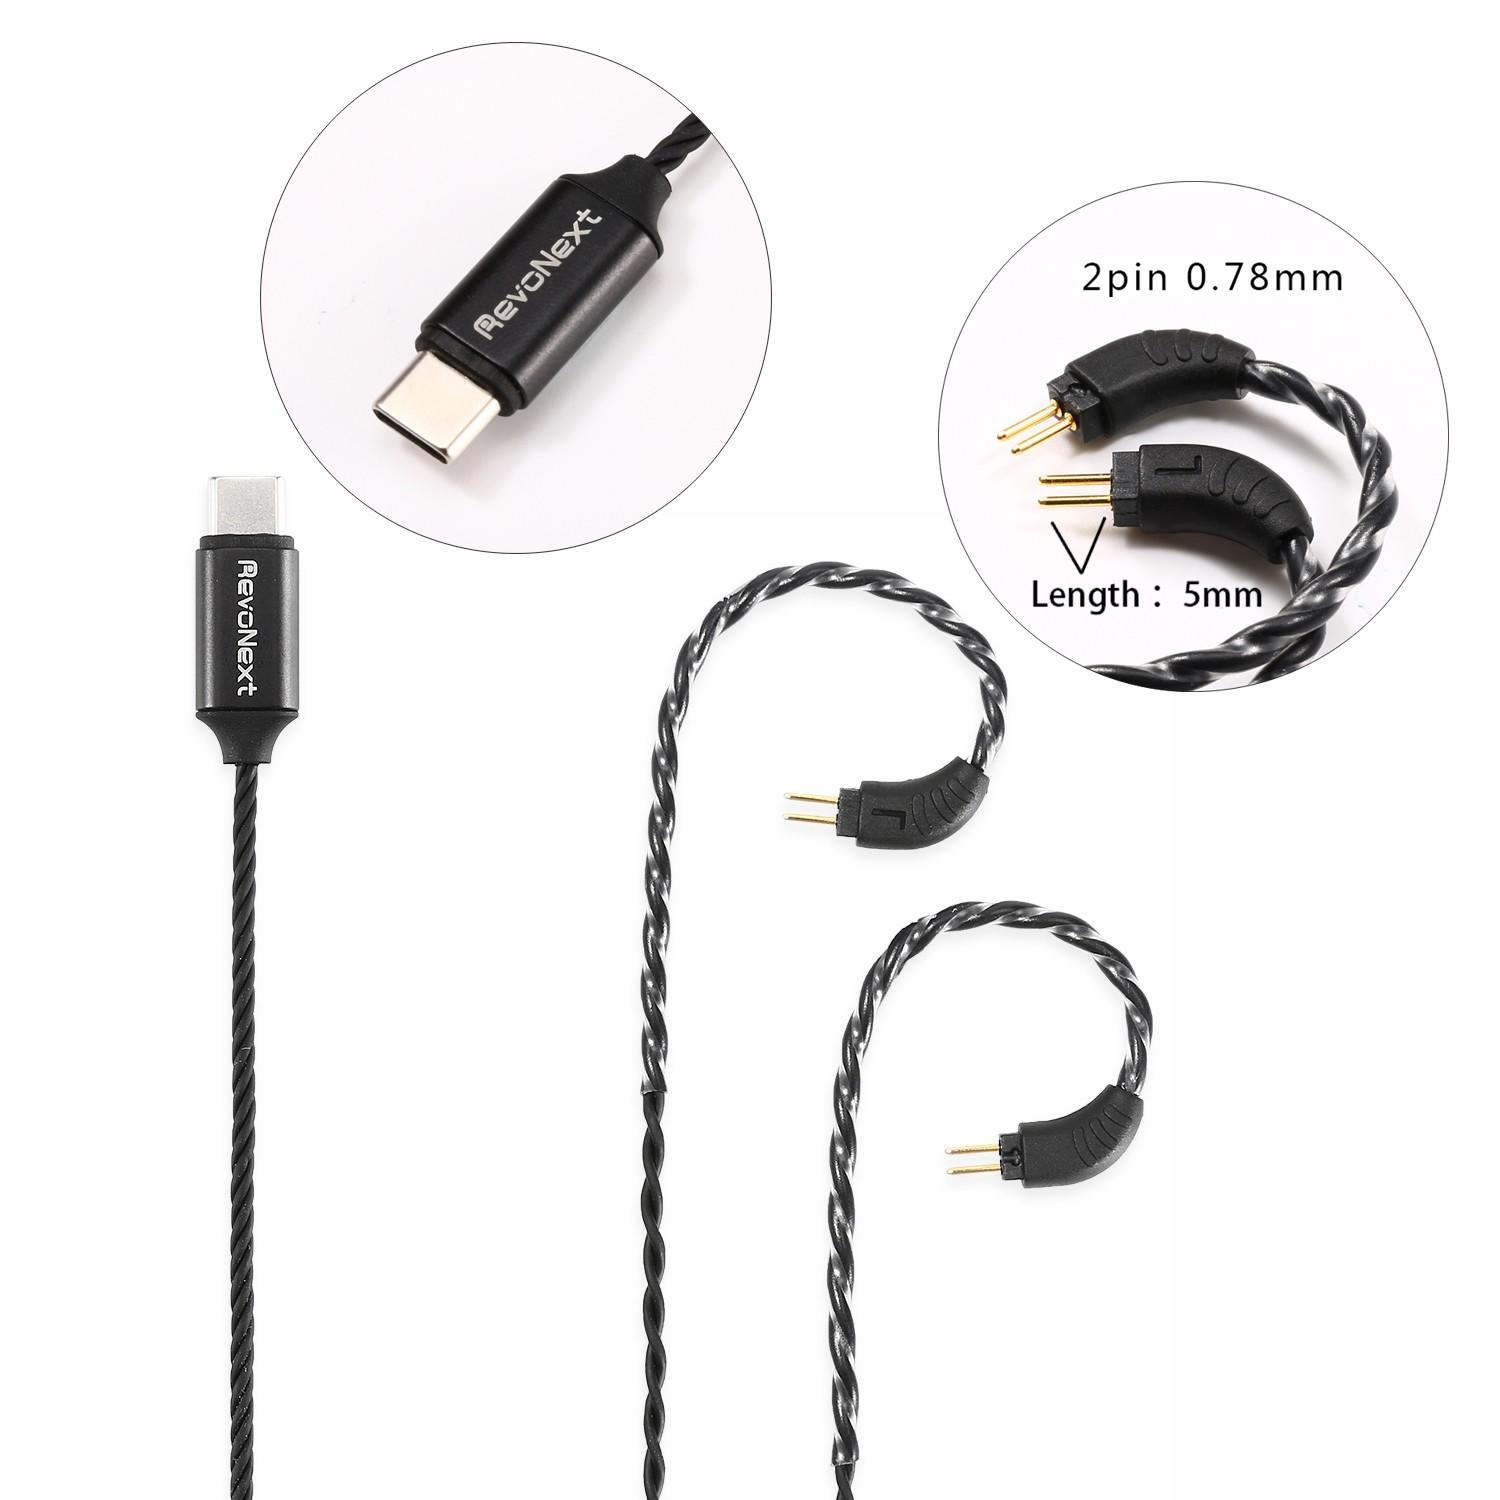 RevoNext detachable lightning cable headphones inquire now for earbuds